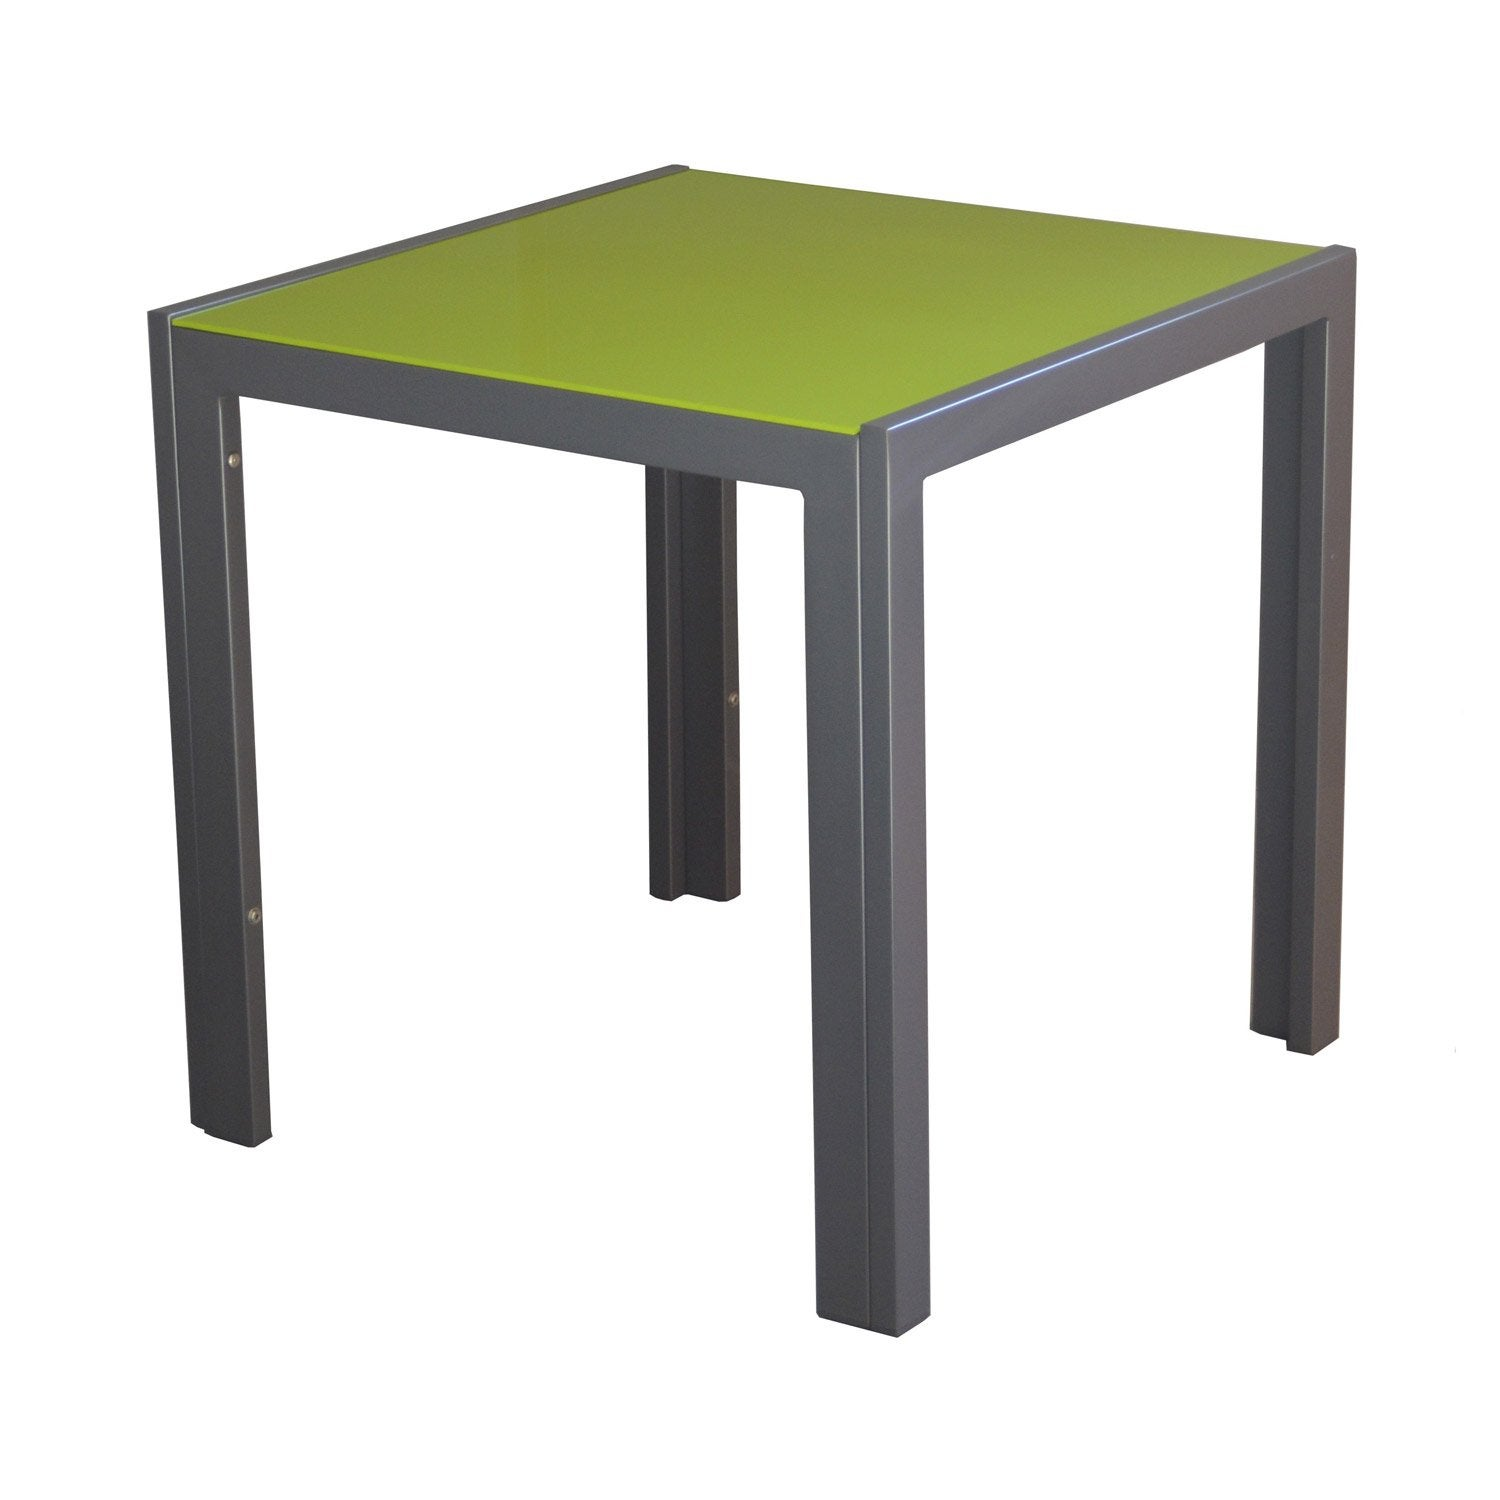 Table basse carr e grey mousse 2 personnes leroy merlin for Leroy merlin table basse